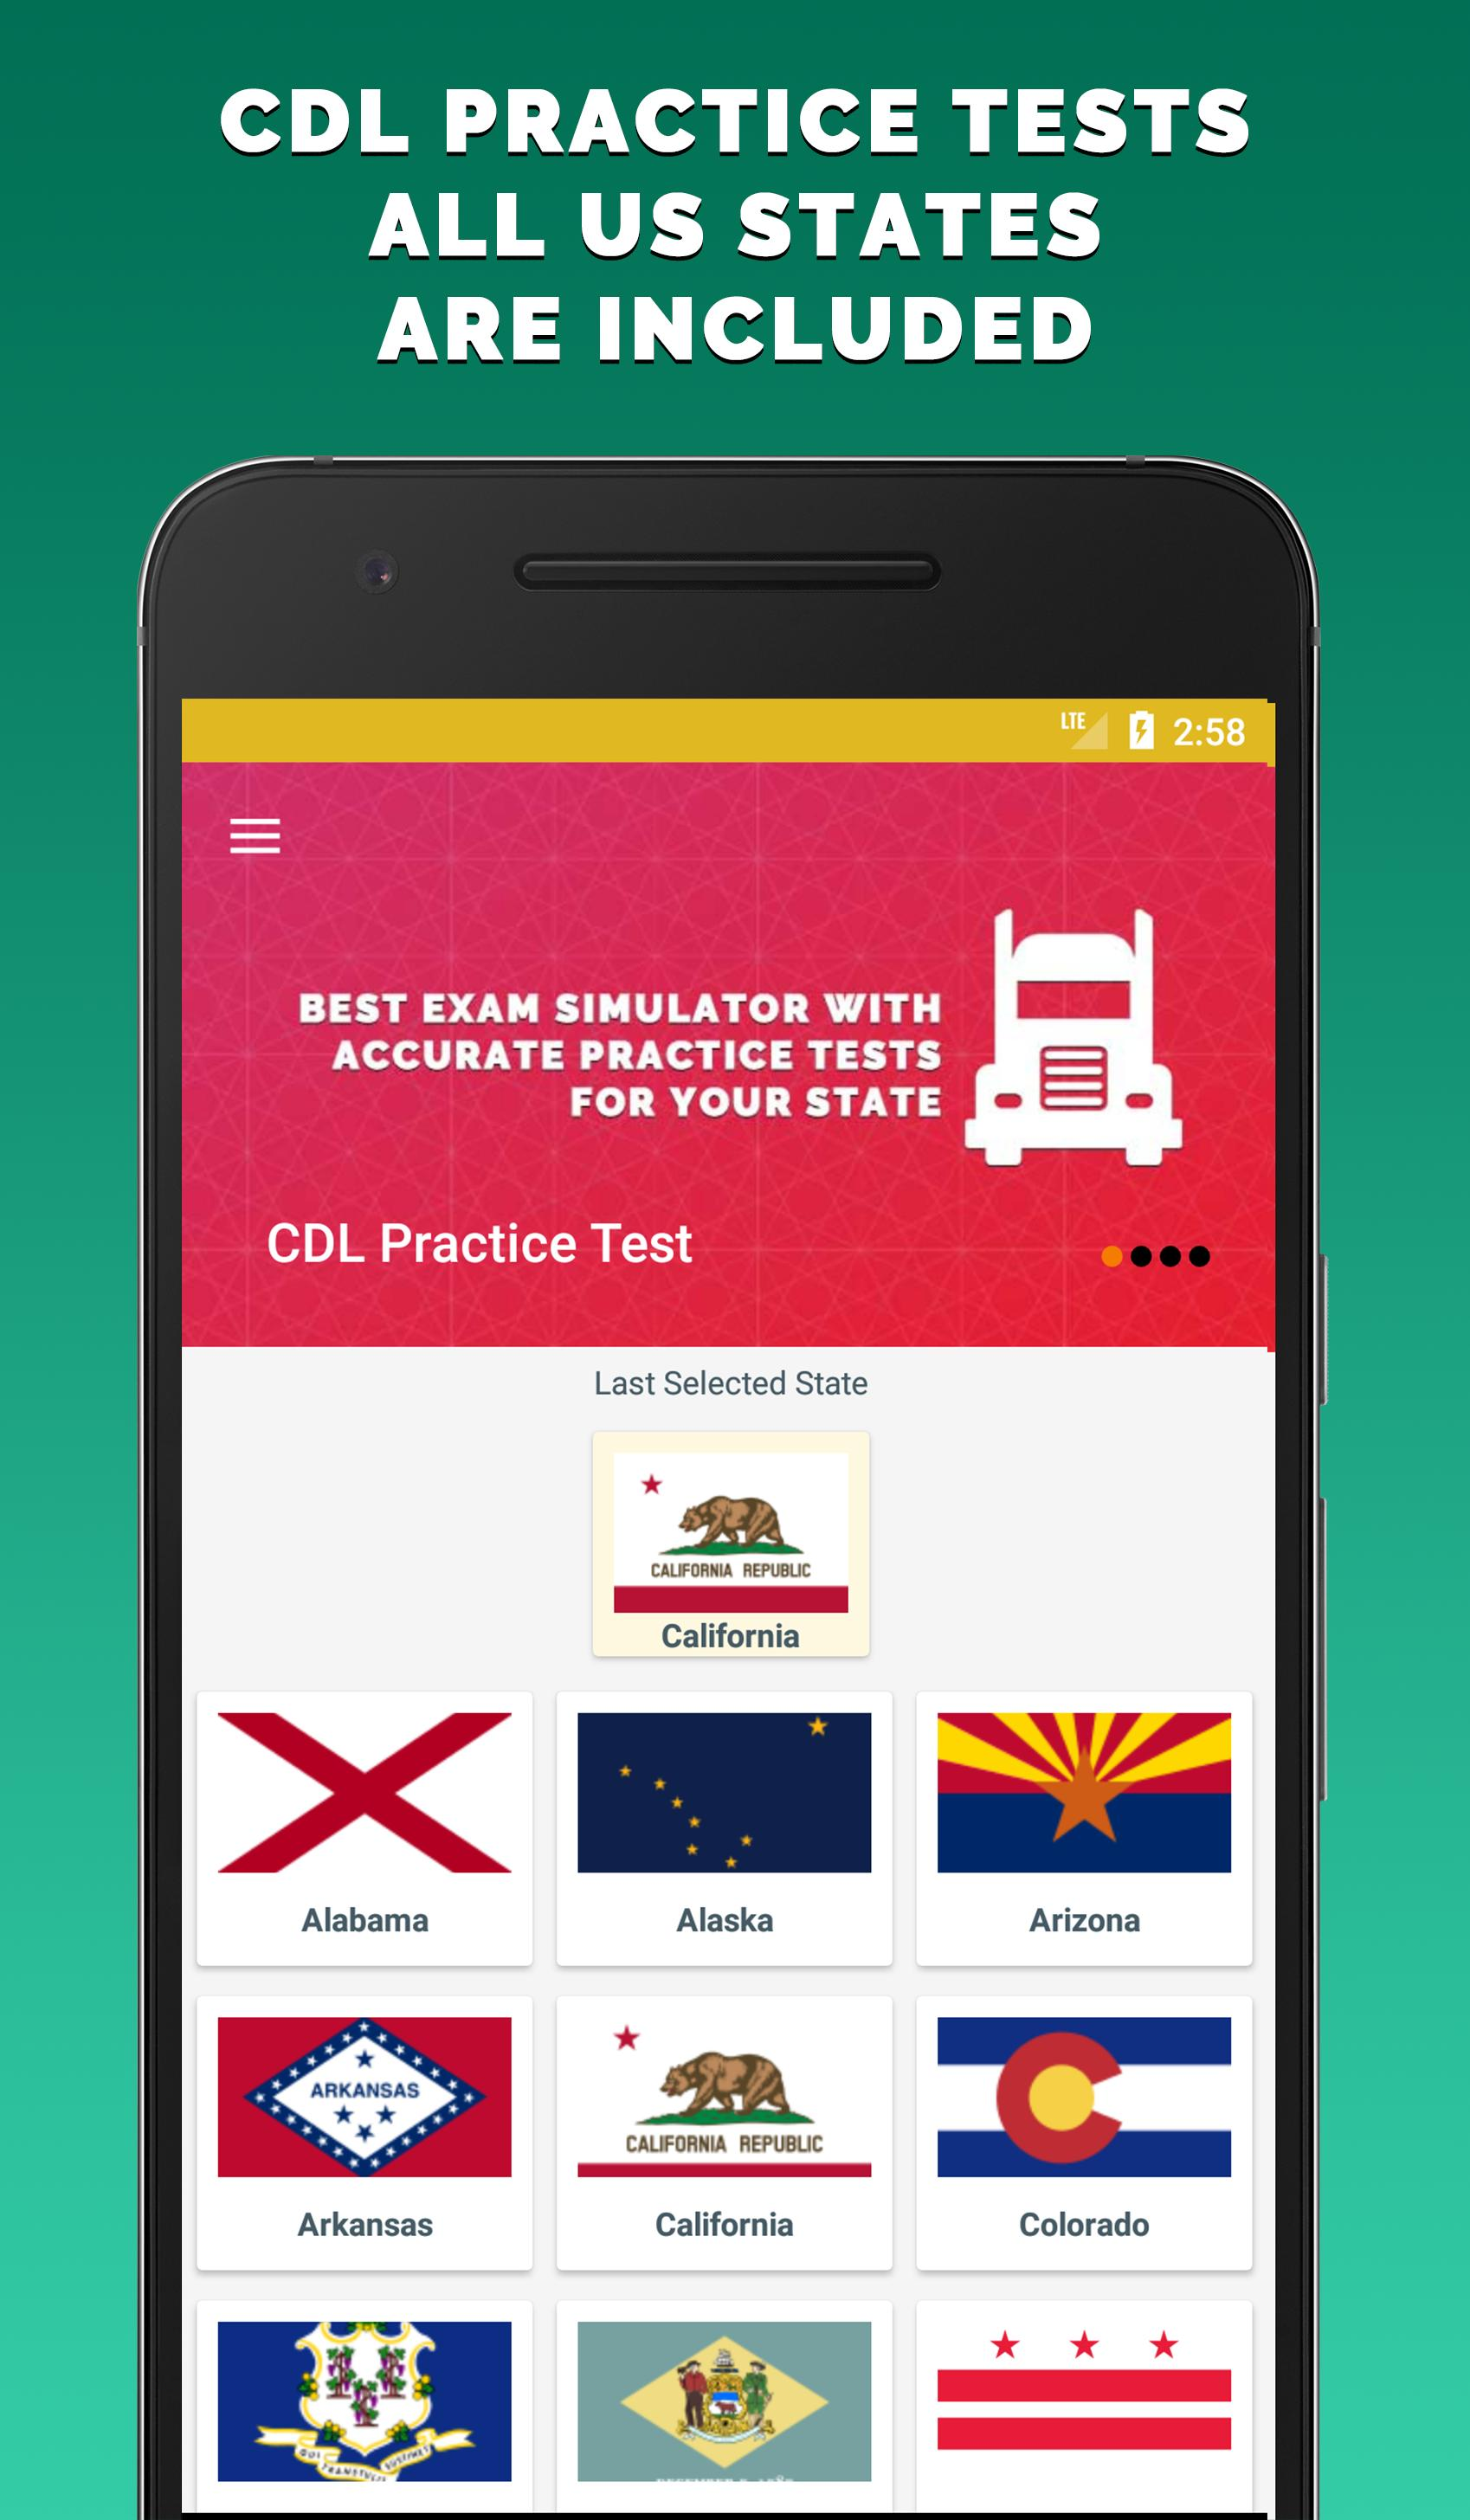 CDL Practice Test for Android - APK Download on dmv written test, cdl license test, dmv license renewal sign test, cdl training, cdl written test, driving test, florida cdl test, cdl study test, cdl general knowledge test, drivers ed signs test, cdl test answers, cdl jobs, adot cdl test, dmv air brake test, cdl eye test, cdl backing test, cdl skills test diagram, cdl drivers test, permit test,